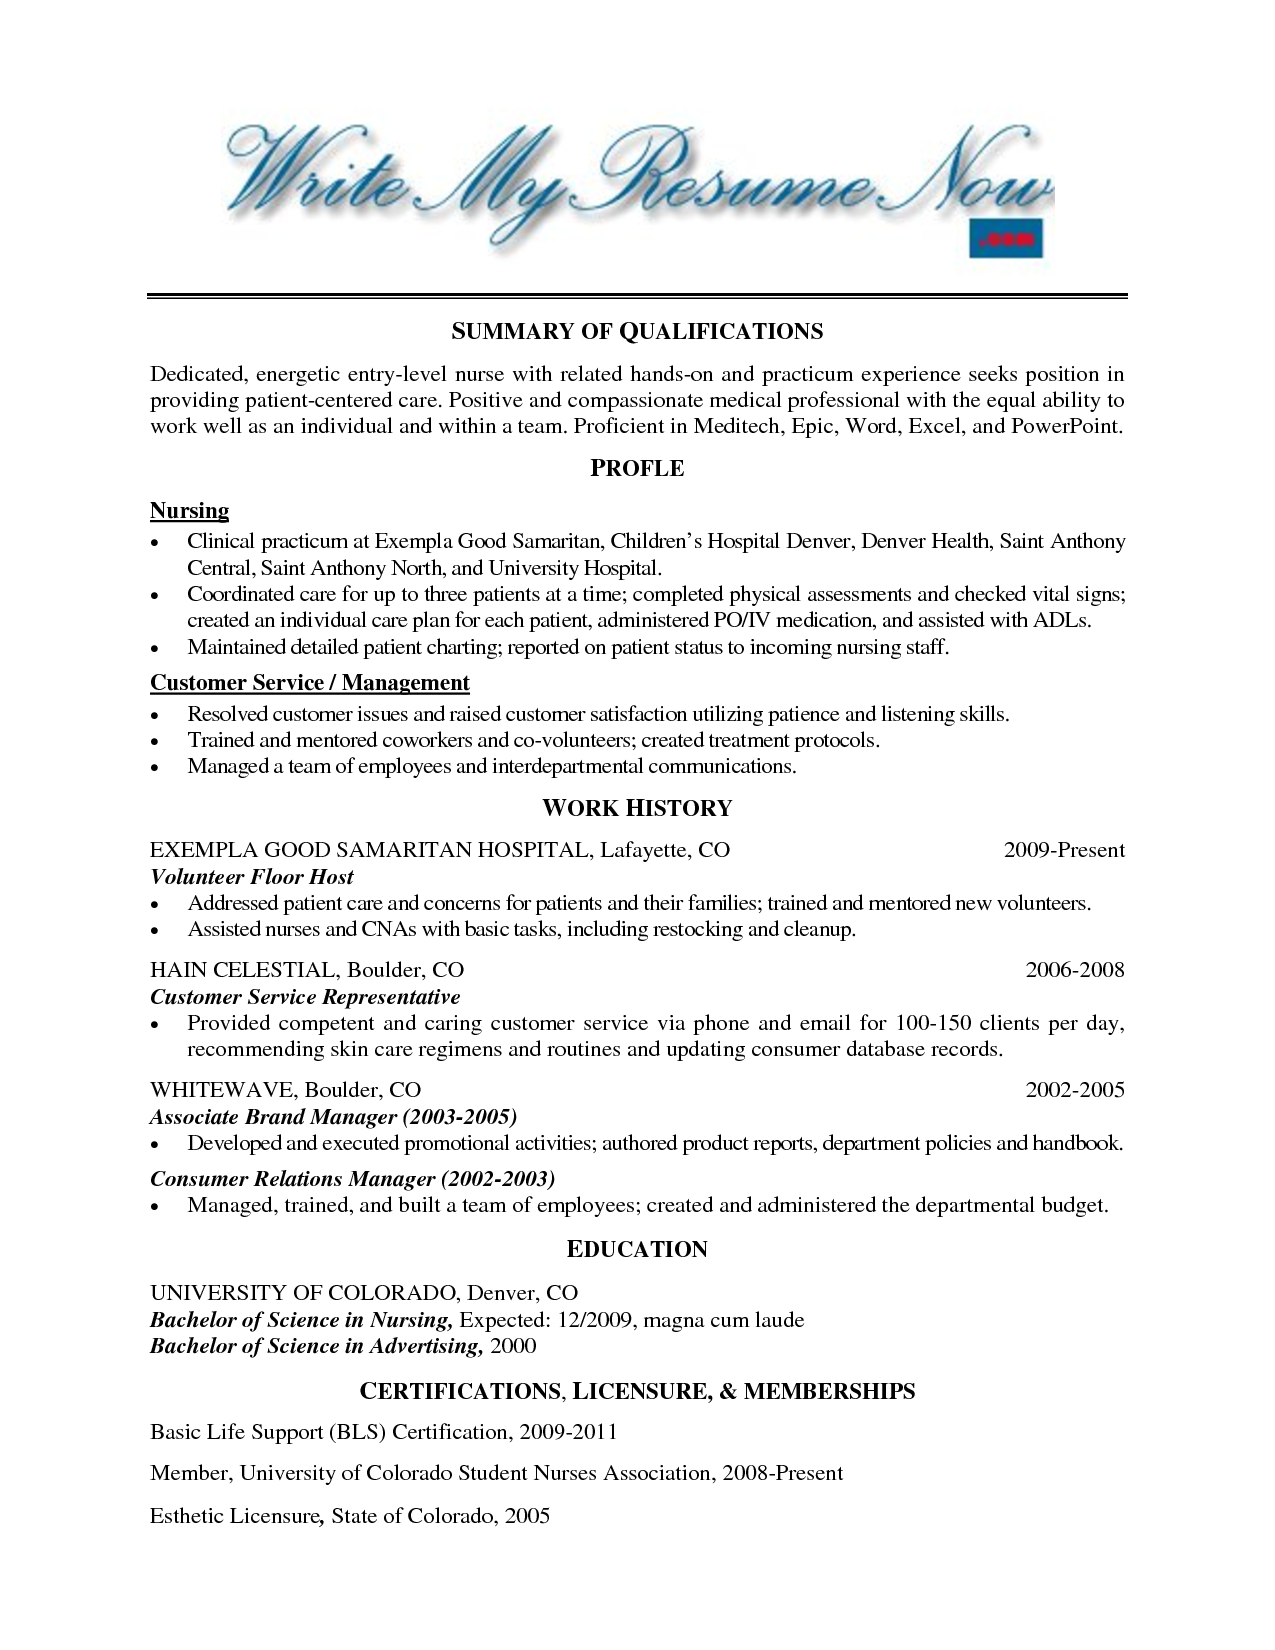 Resume Templates Volunteer Experience #experience #resume #ResumeTemplates  #templates #volunteer